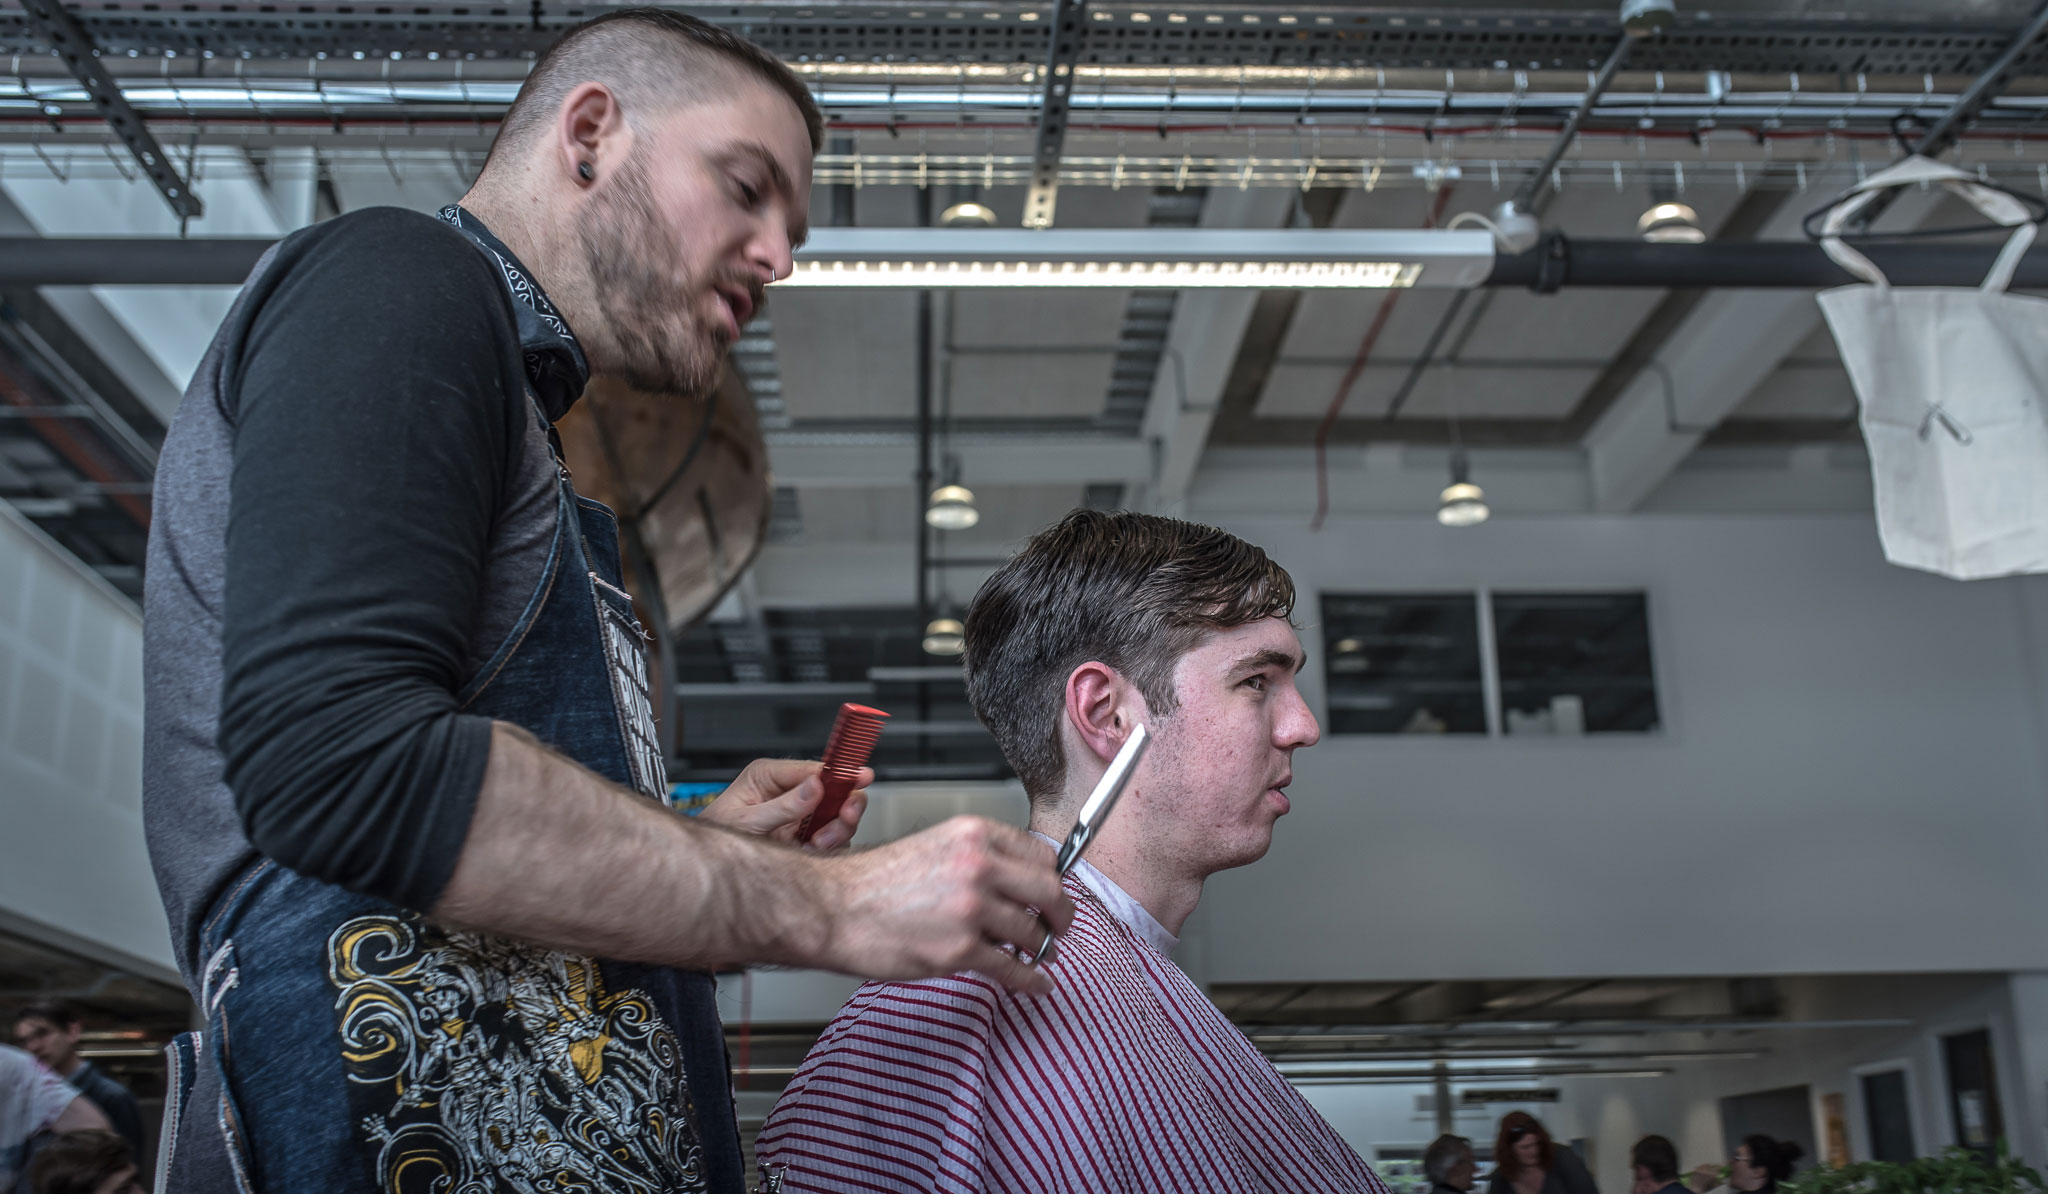 Pop up Barber Cut the Punx with scissorsr and customer